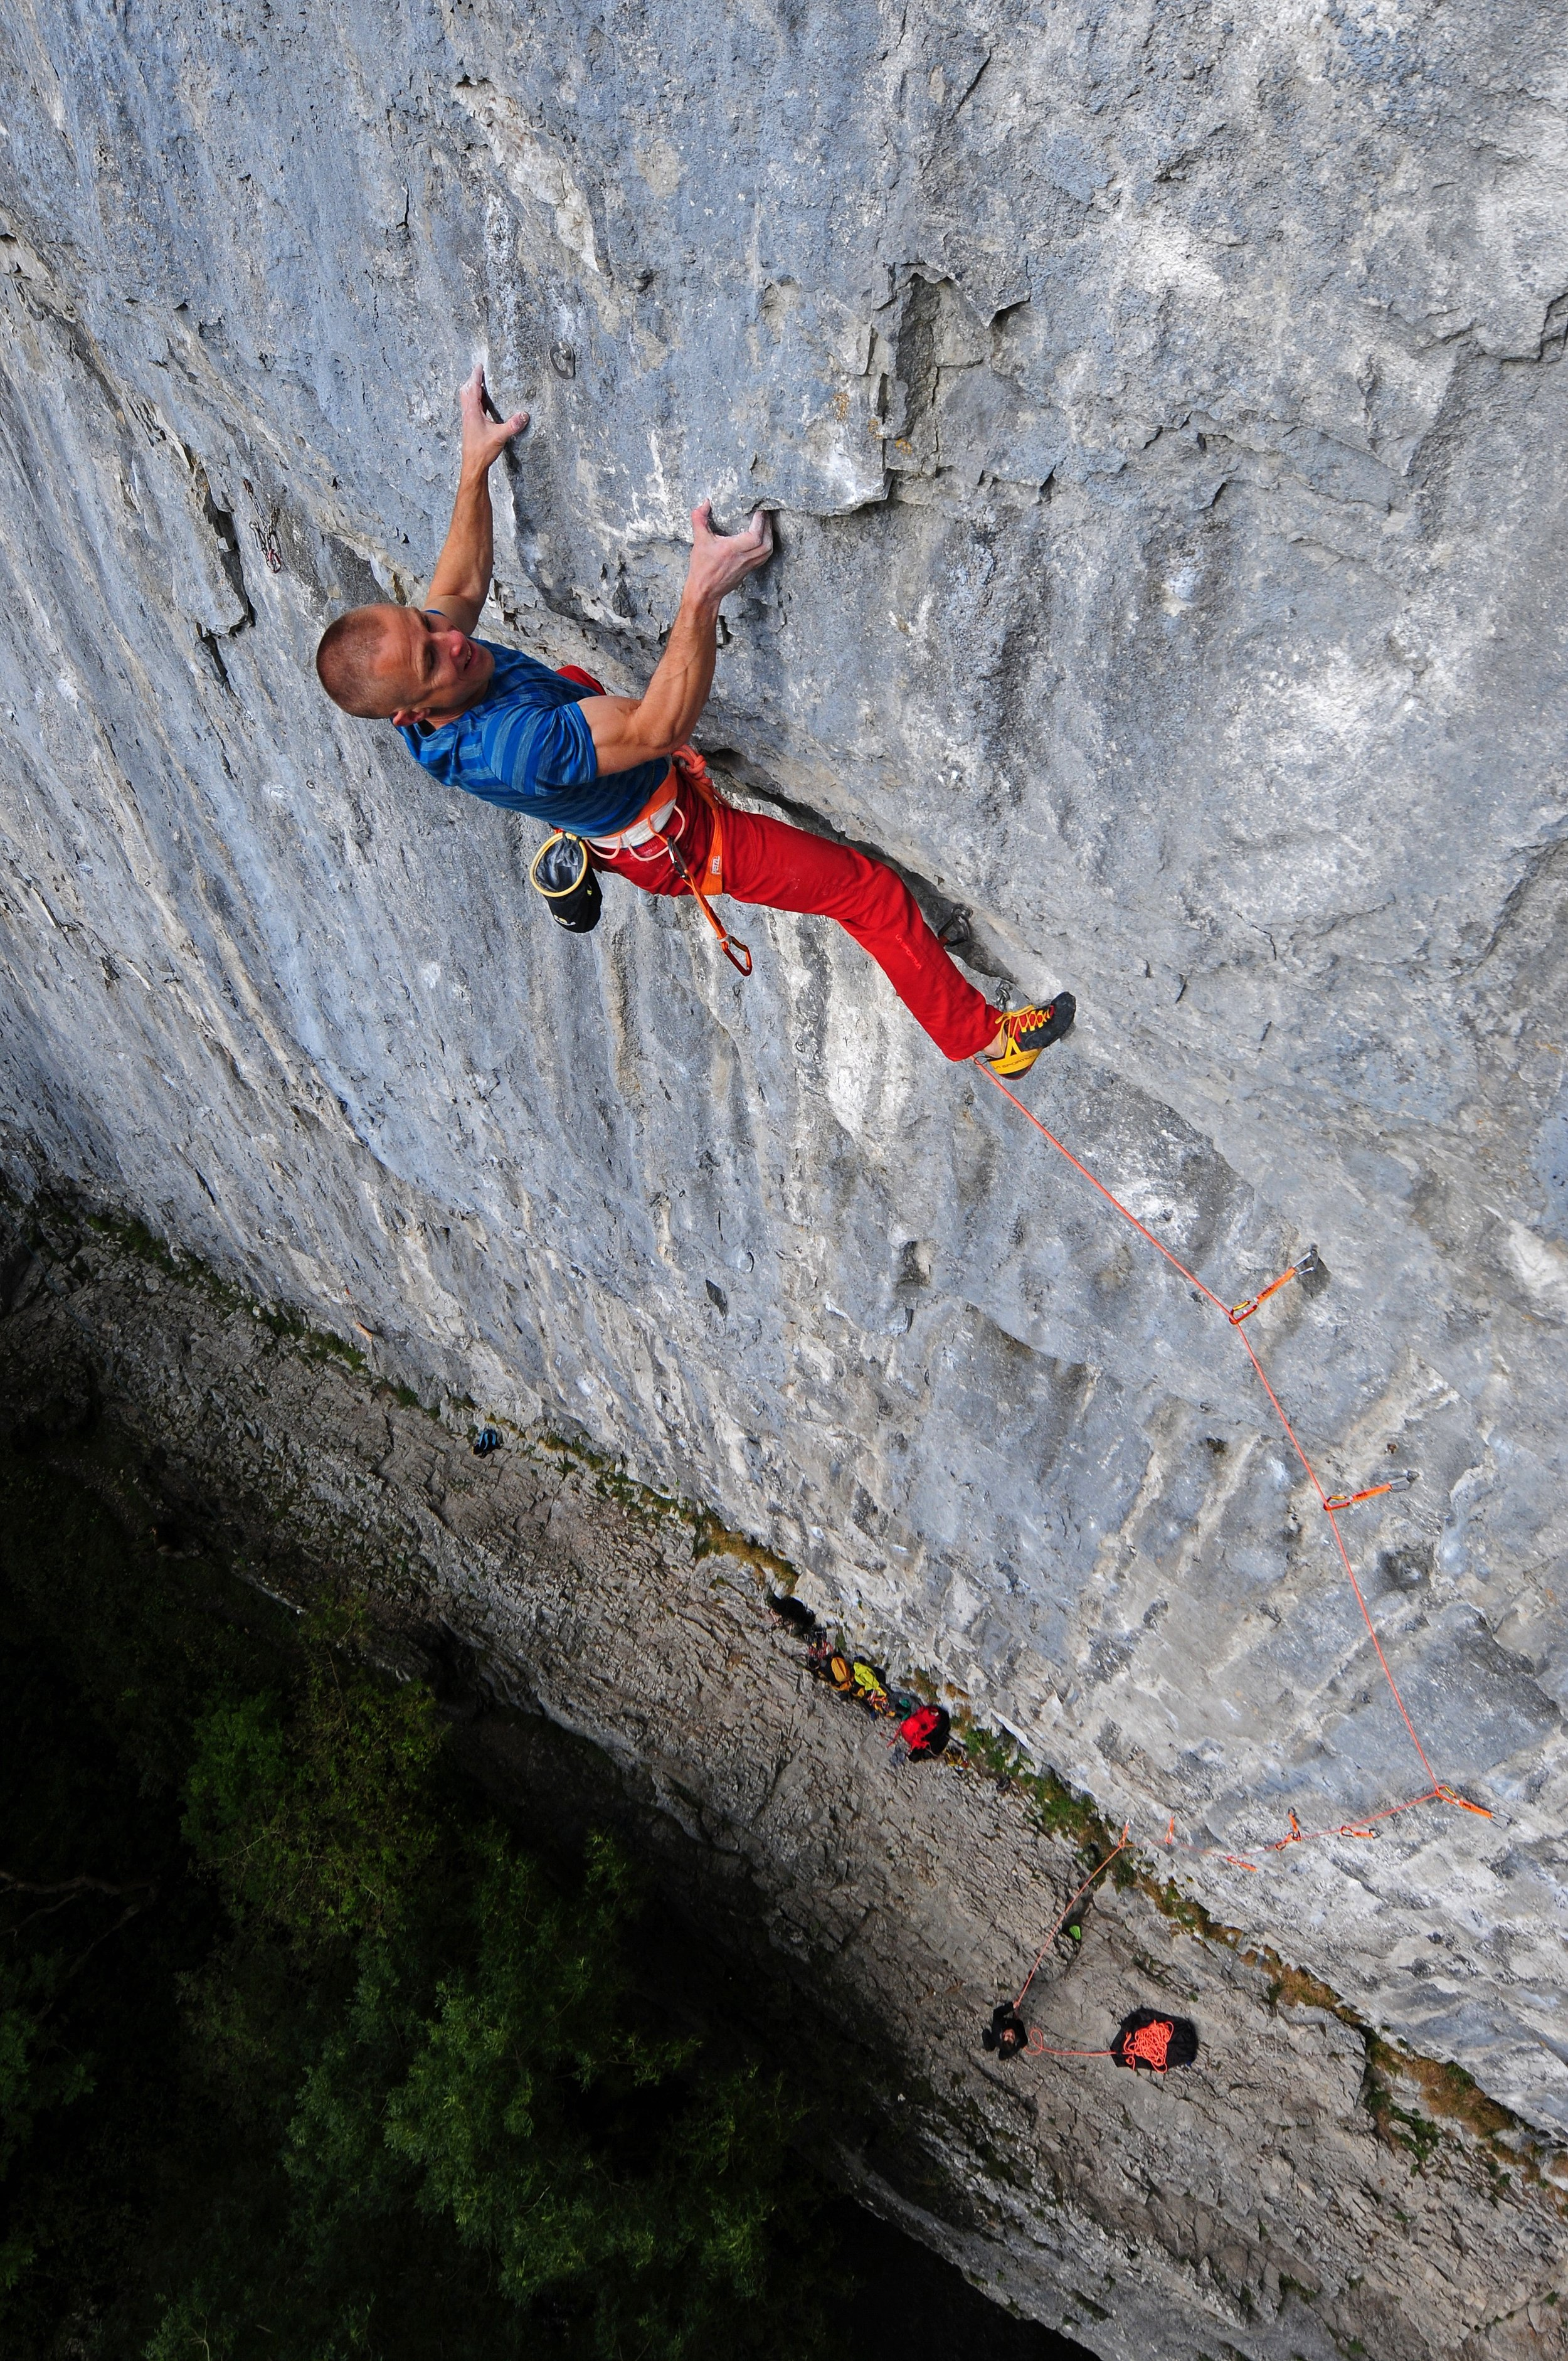 First ascent of Sabotage 8c+, Malham Cove in 2016. Photo: Ian Parnell